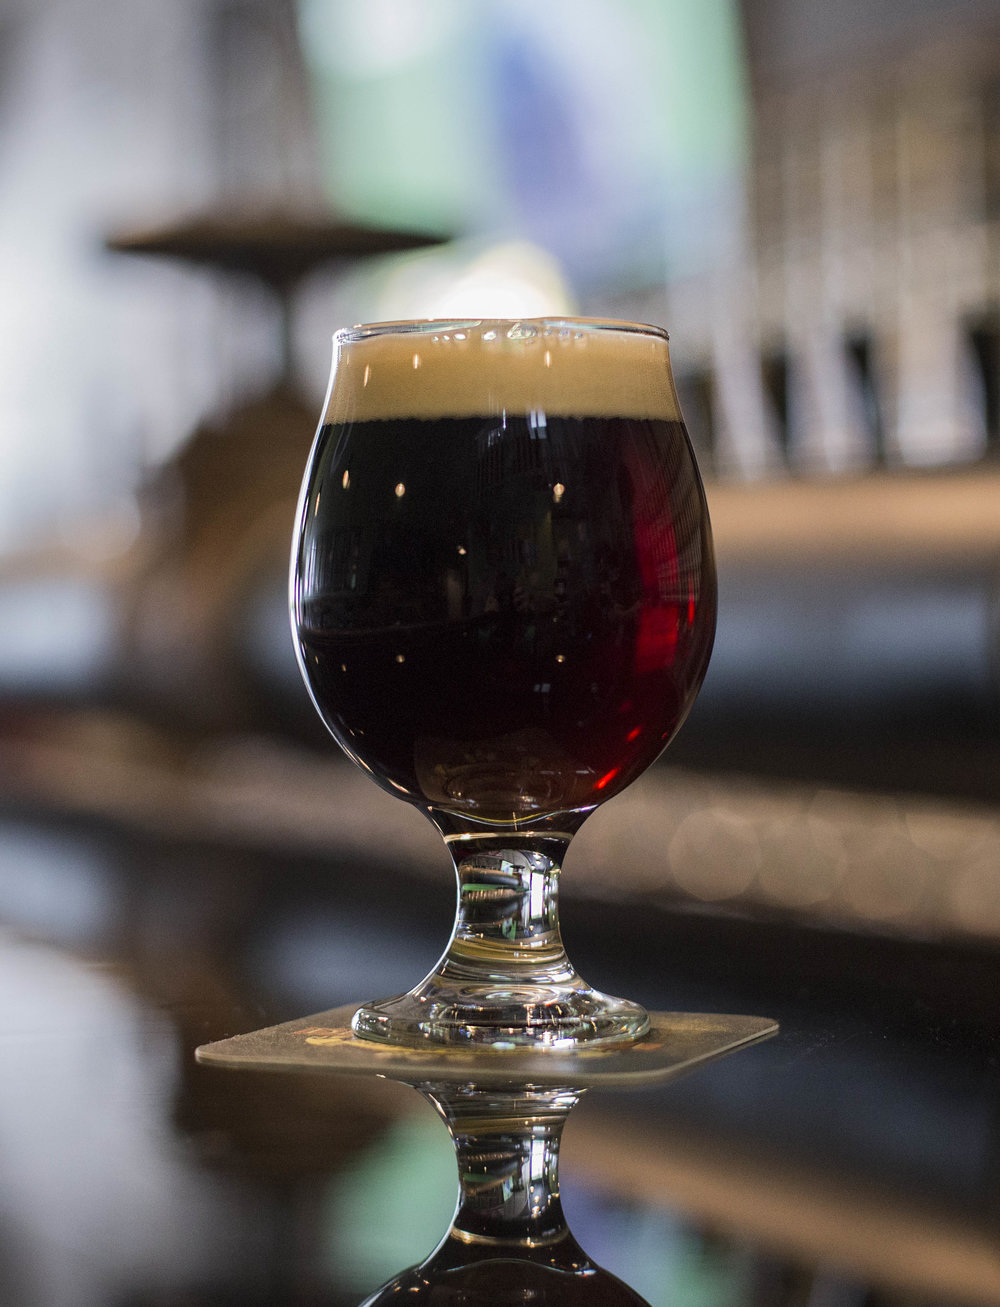 Blootered Scotch Ale - INFO COMING SOON